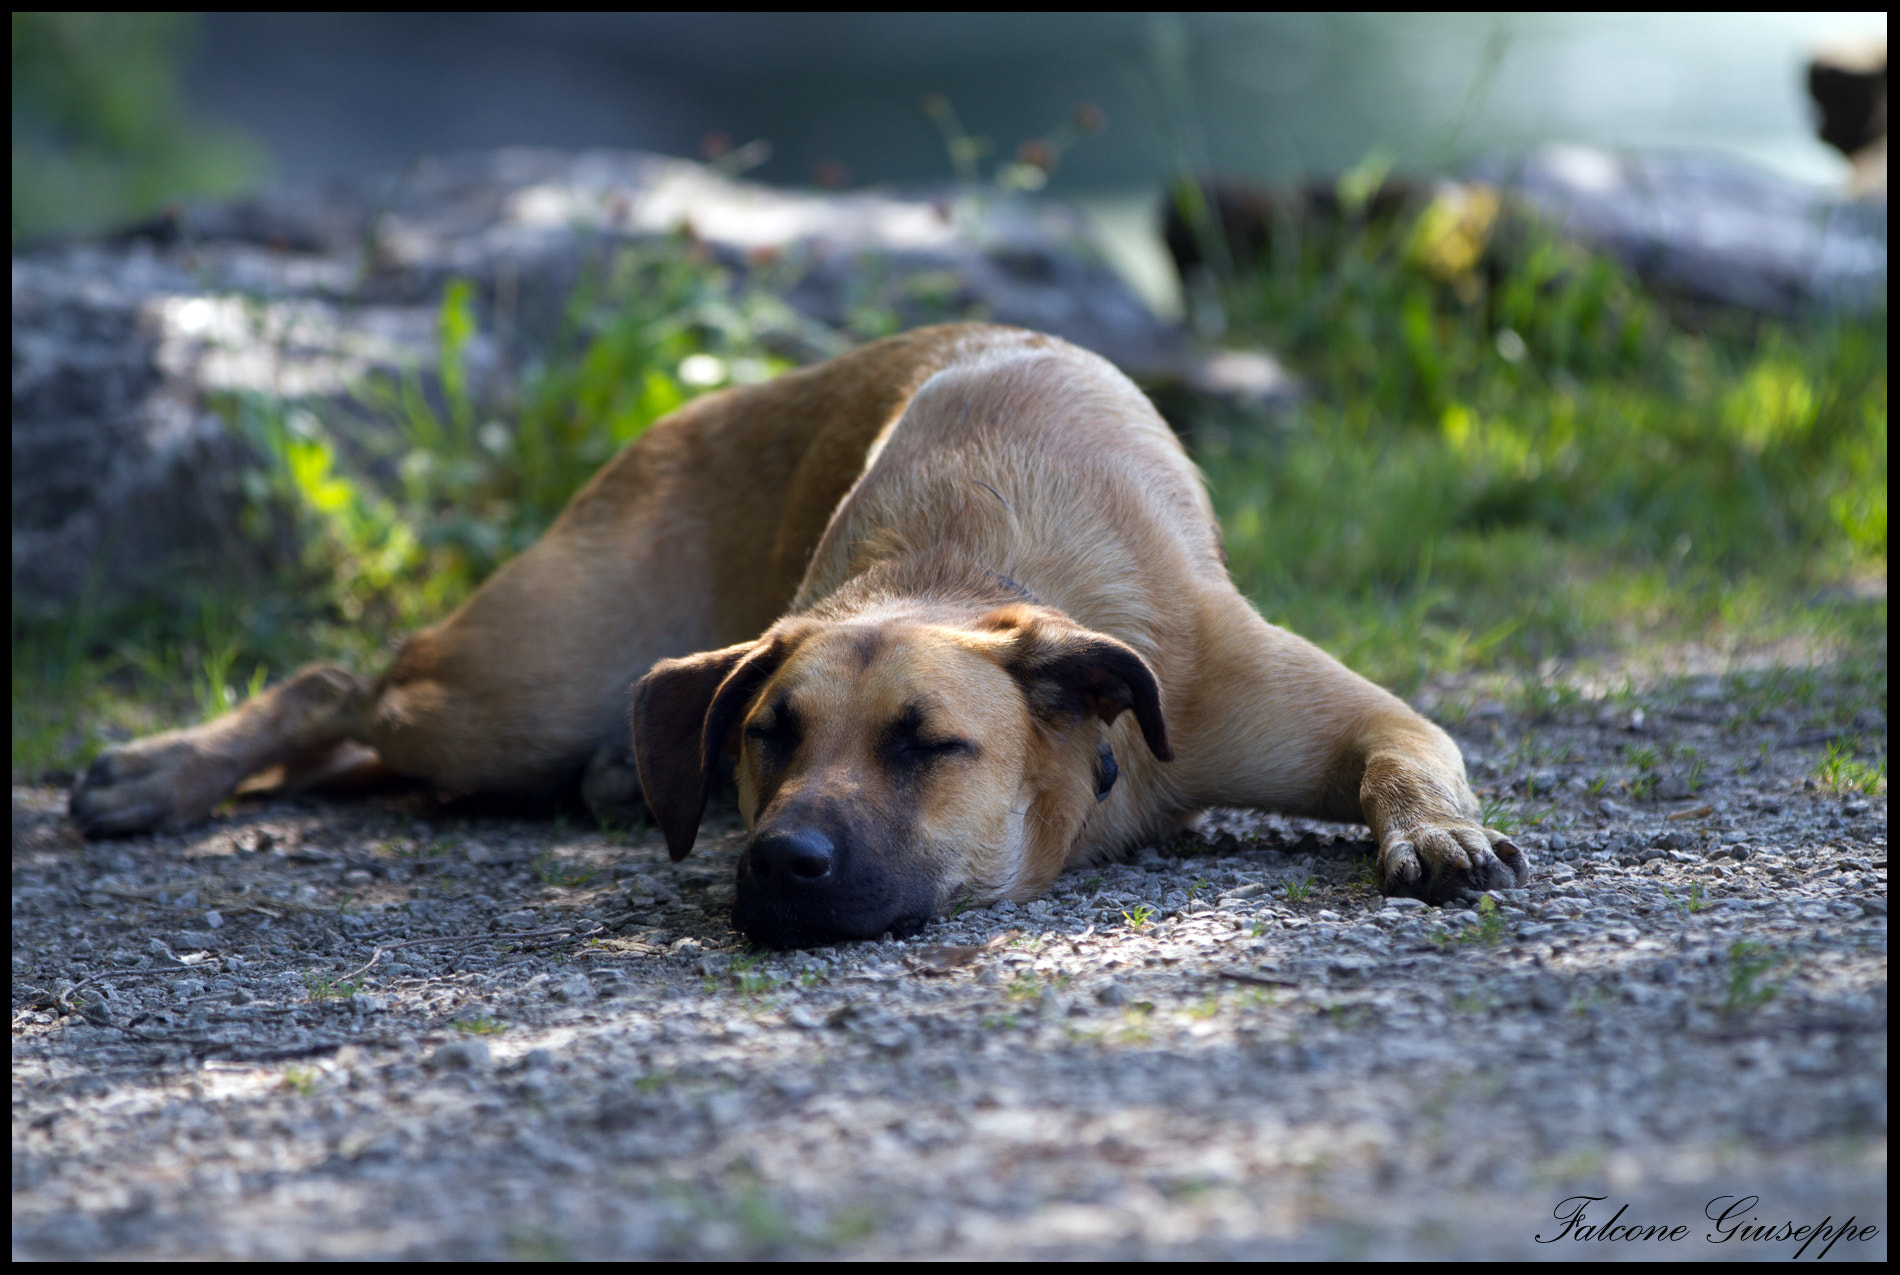 Photograph Sleeping dog by Falcone Giuseppe on 500px